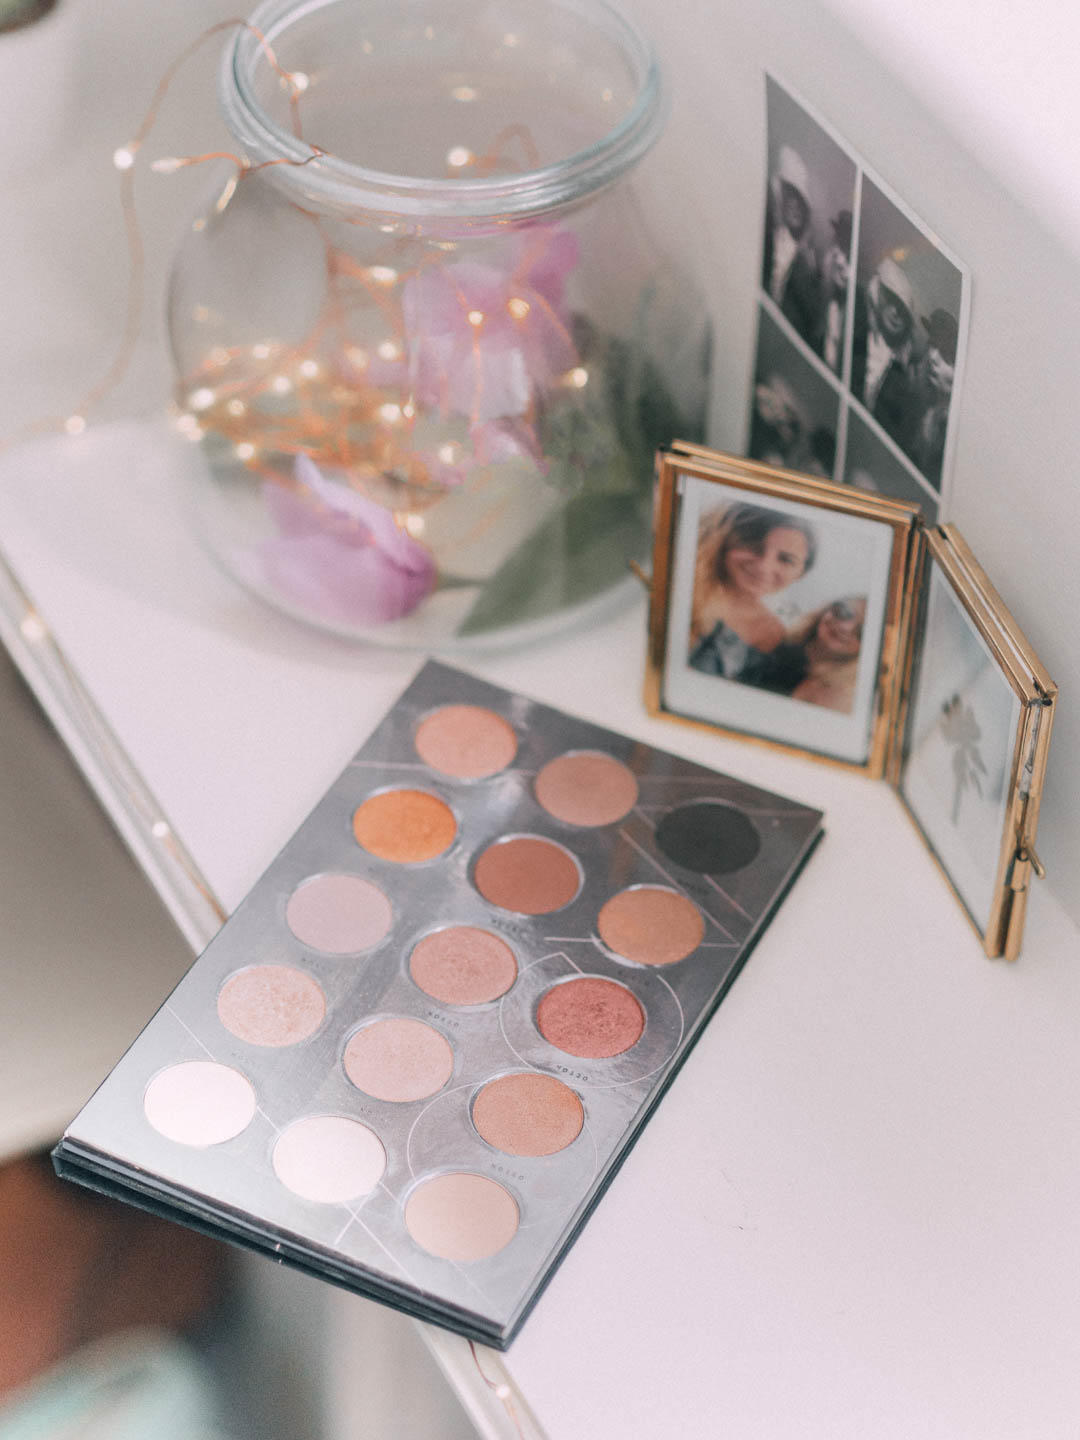 April Makeup: The Top Three Zoeva Nude Spectrum Palette